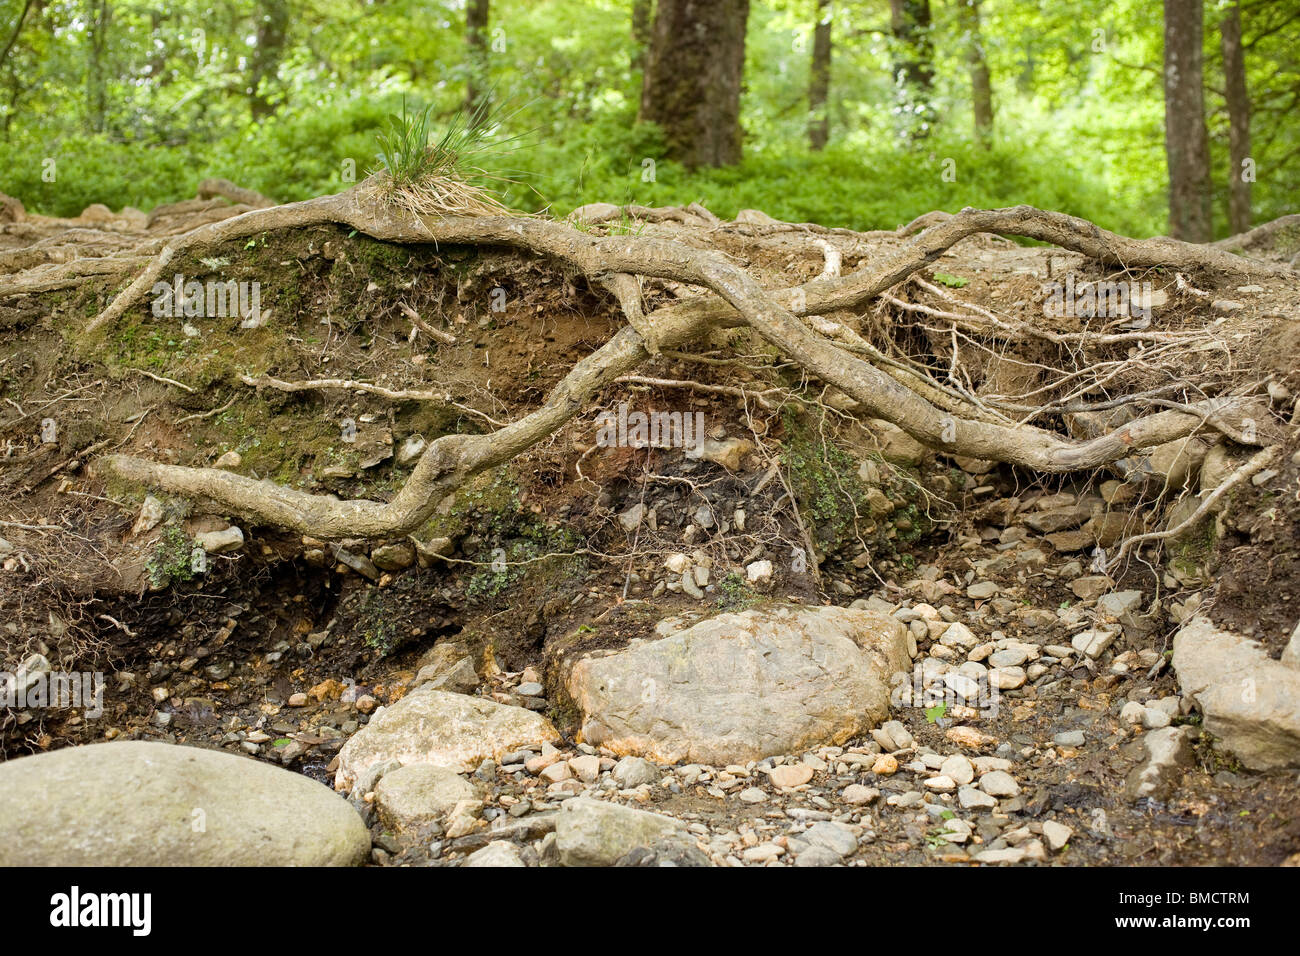 decay,decaying,tree,roots,branch,branches,stump.clay,soil,dump.exposed,root,plant,knarled,twisted,entwine,entwines,interweaving, - Stock Image